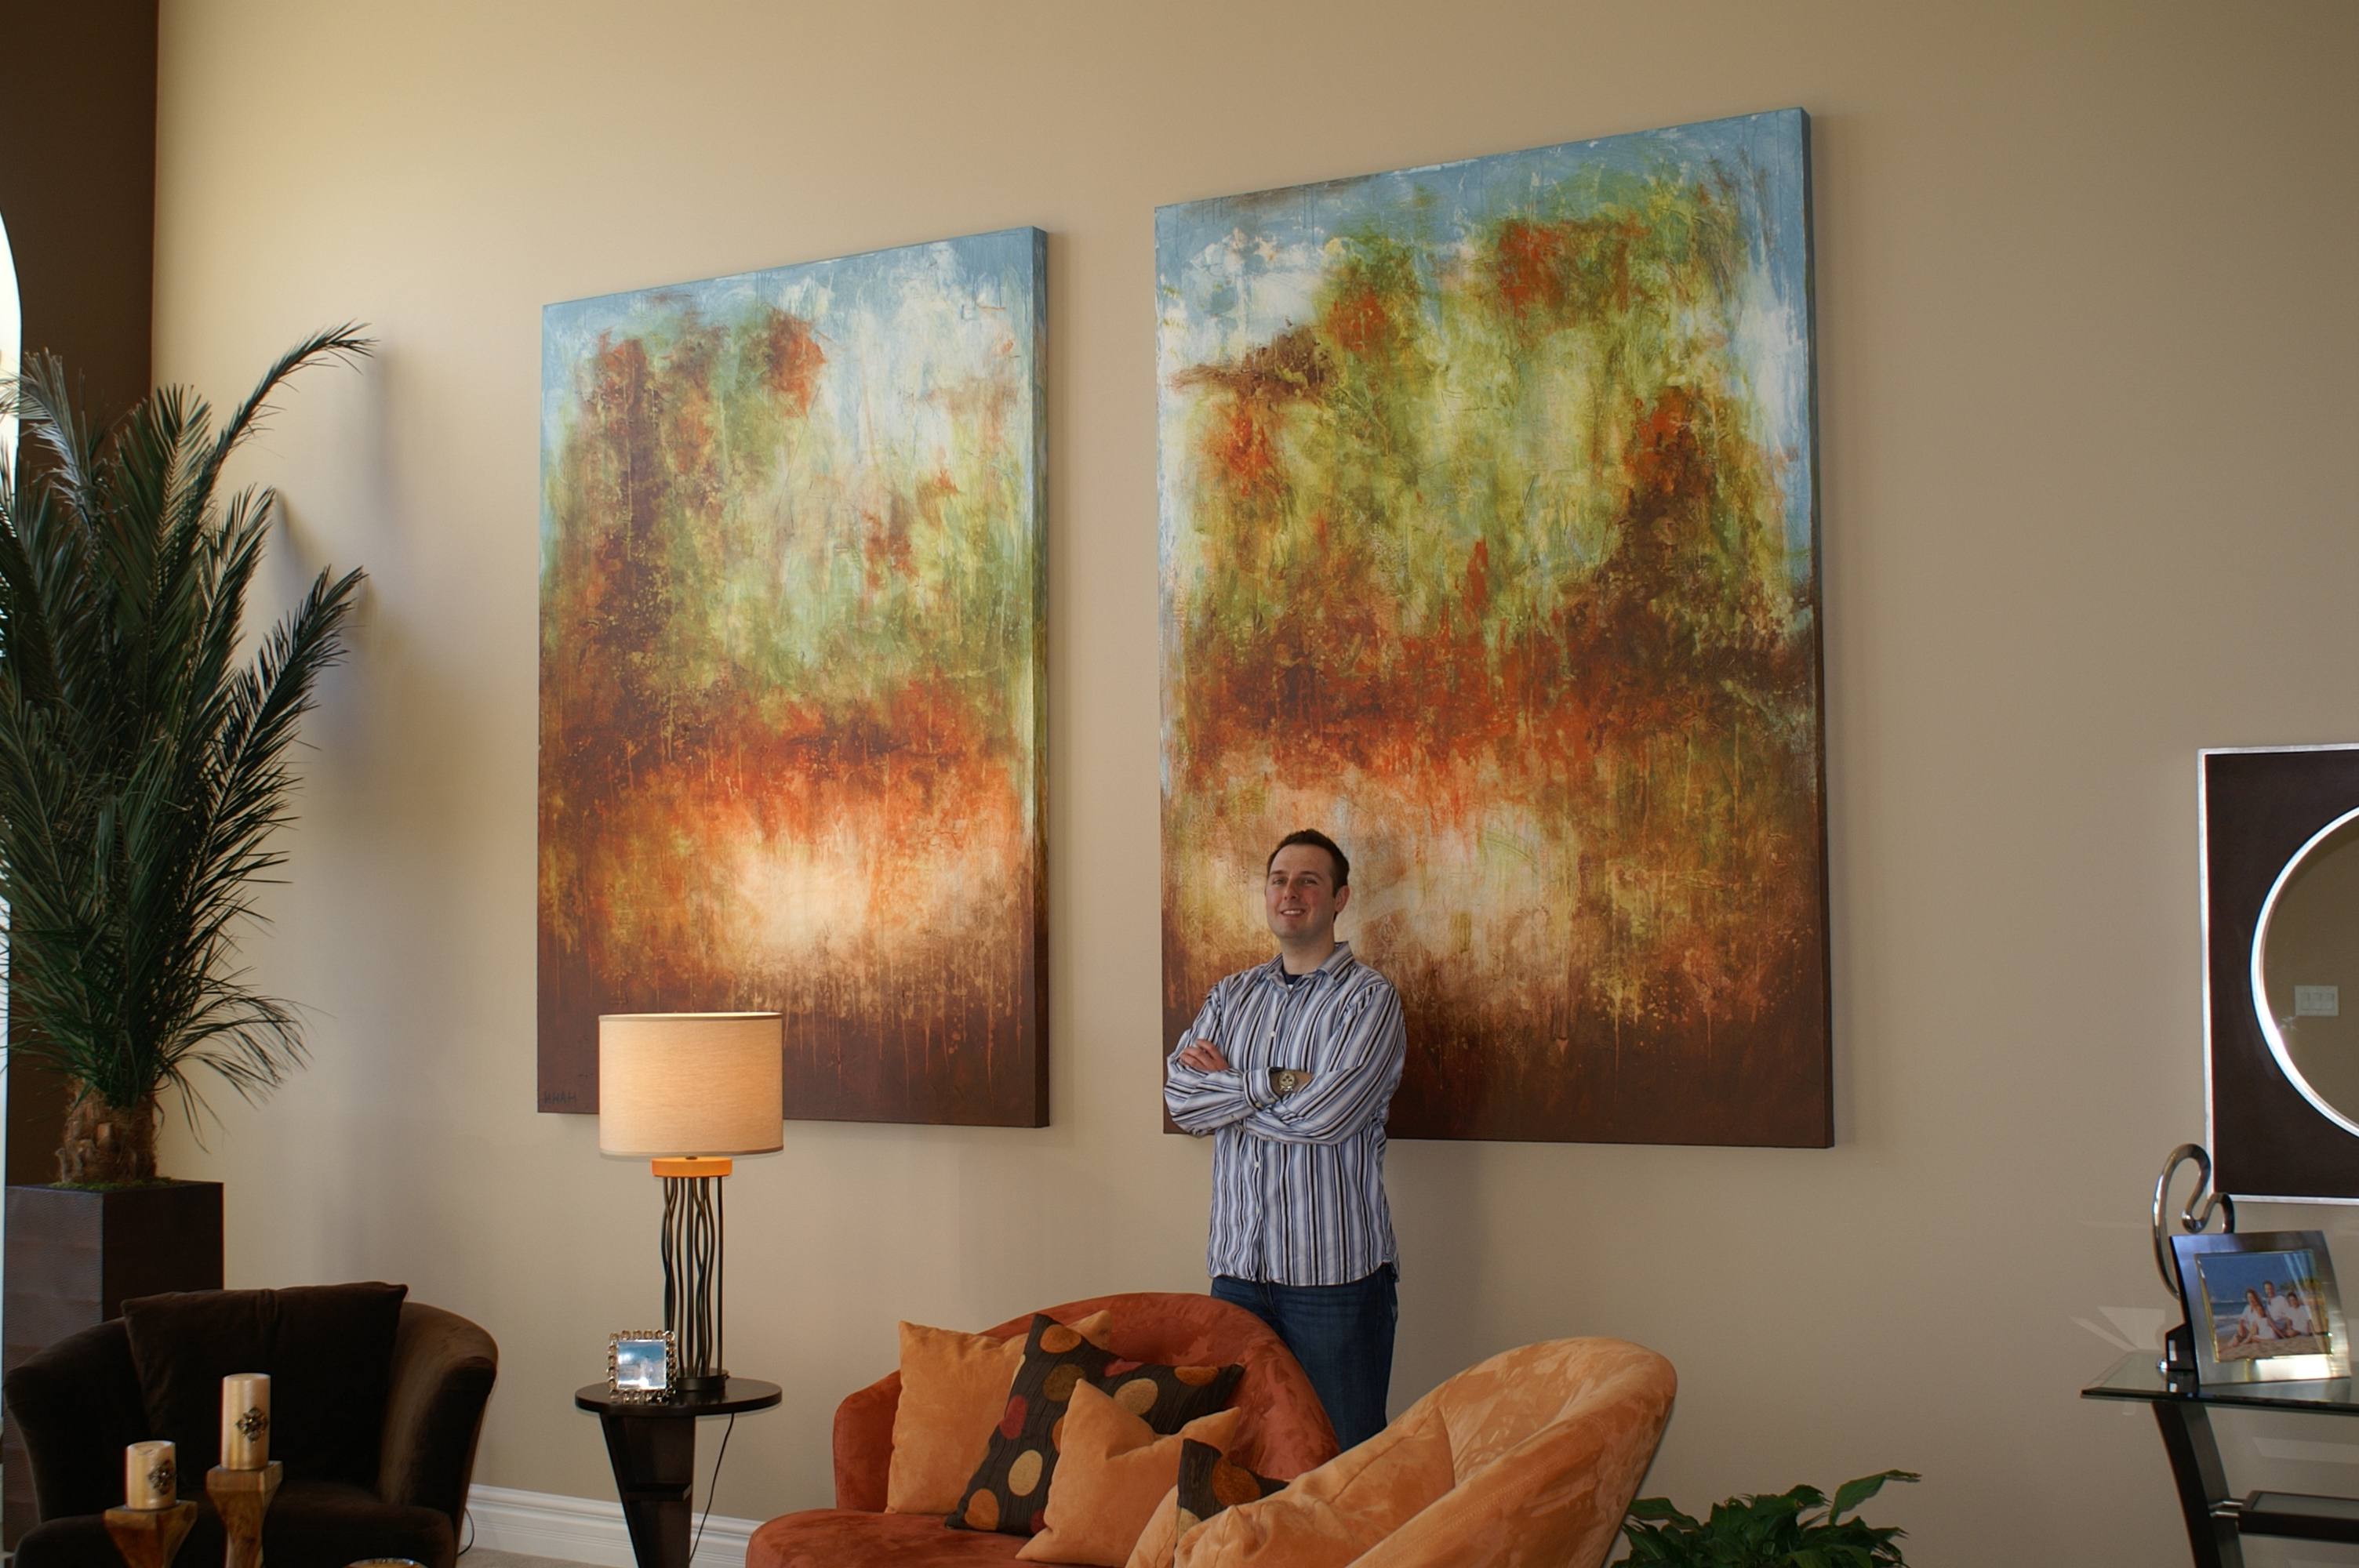 Oversized Commissioned Painting For A Two Story Great Room – Andy Within Most Popular Oversized Abstract Wall Art (Gallery 2 of 15)